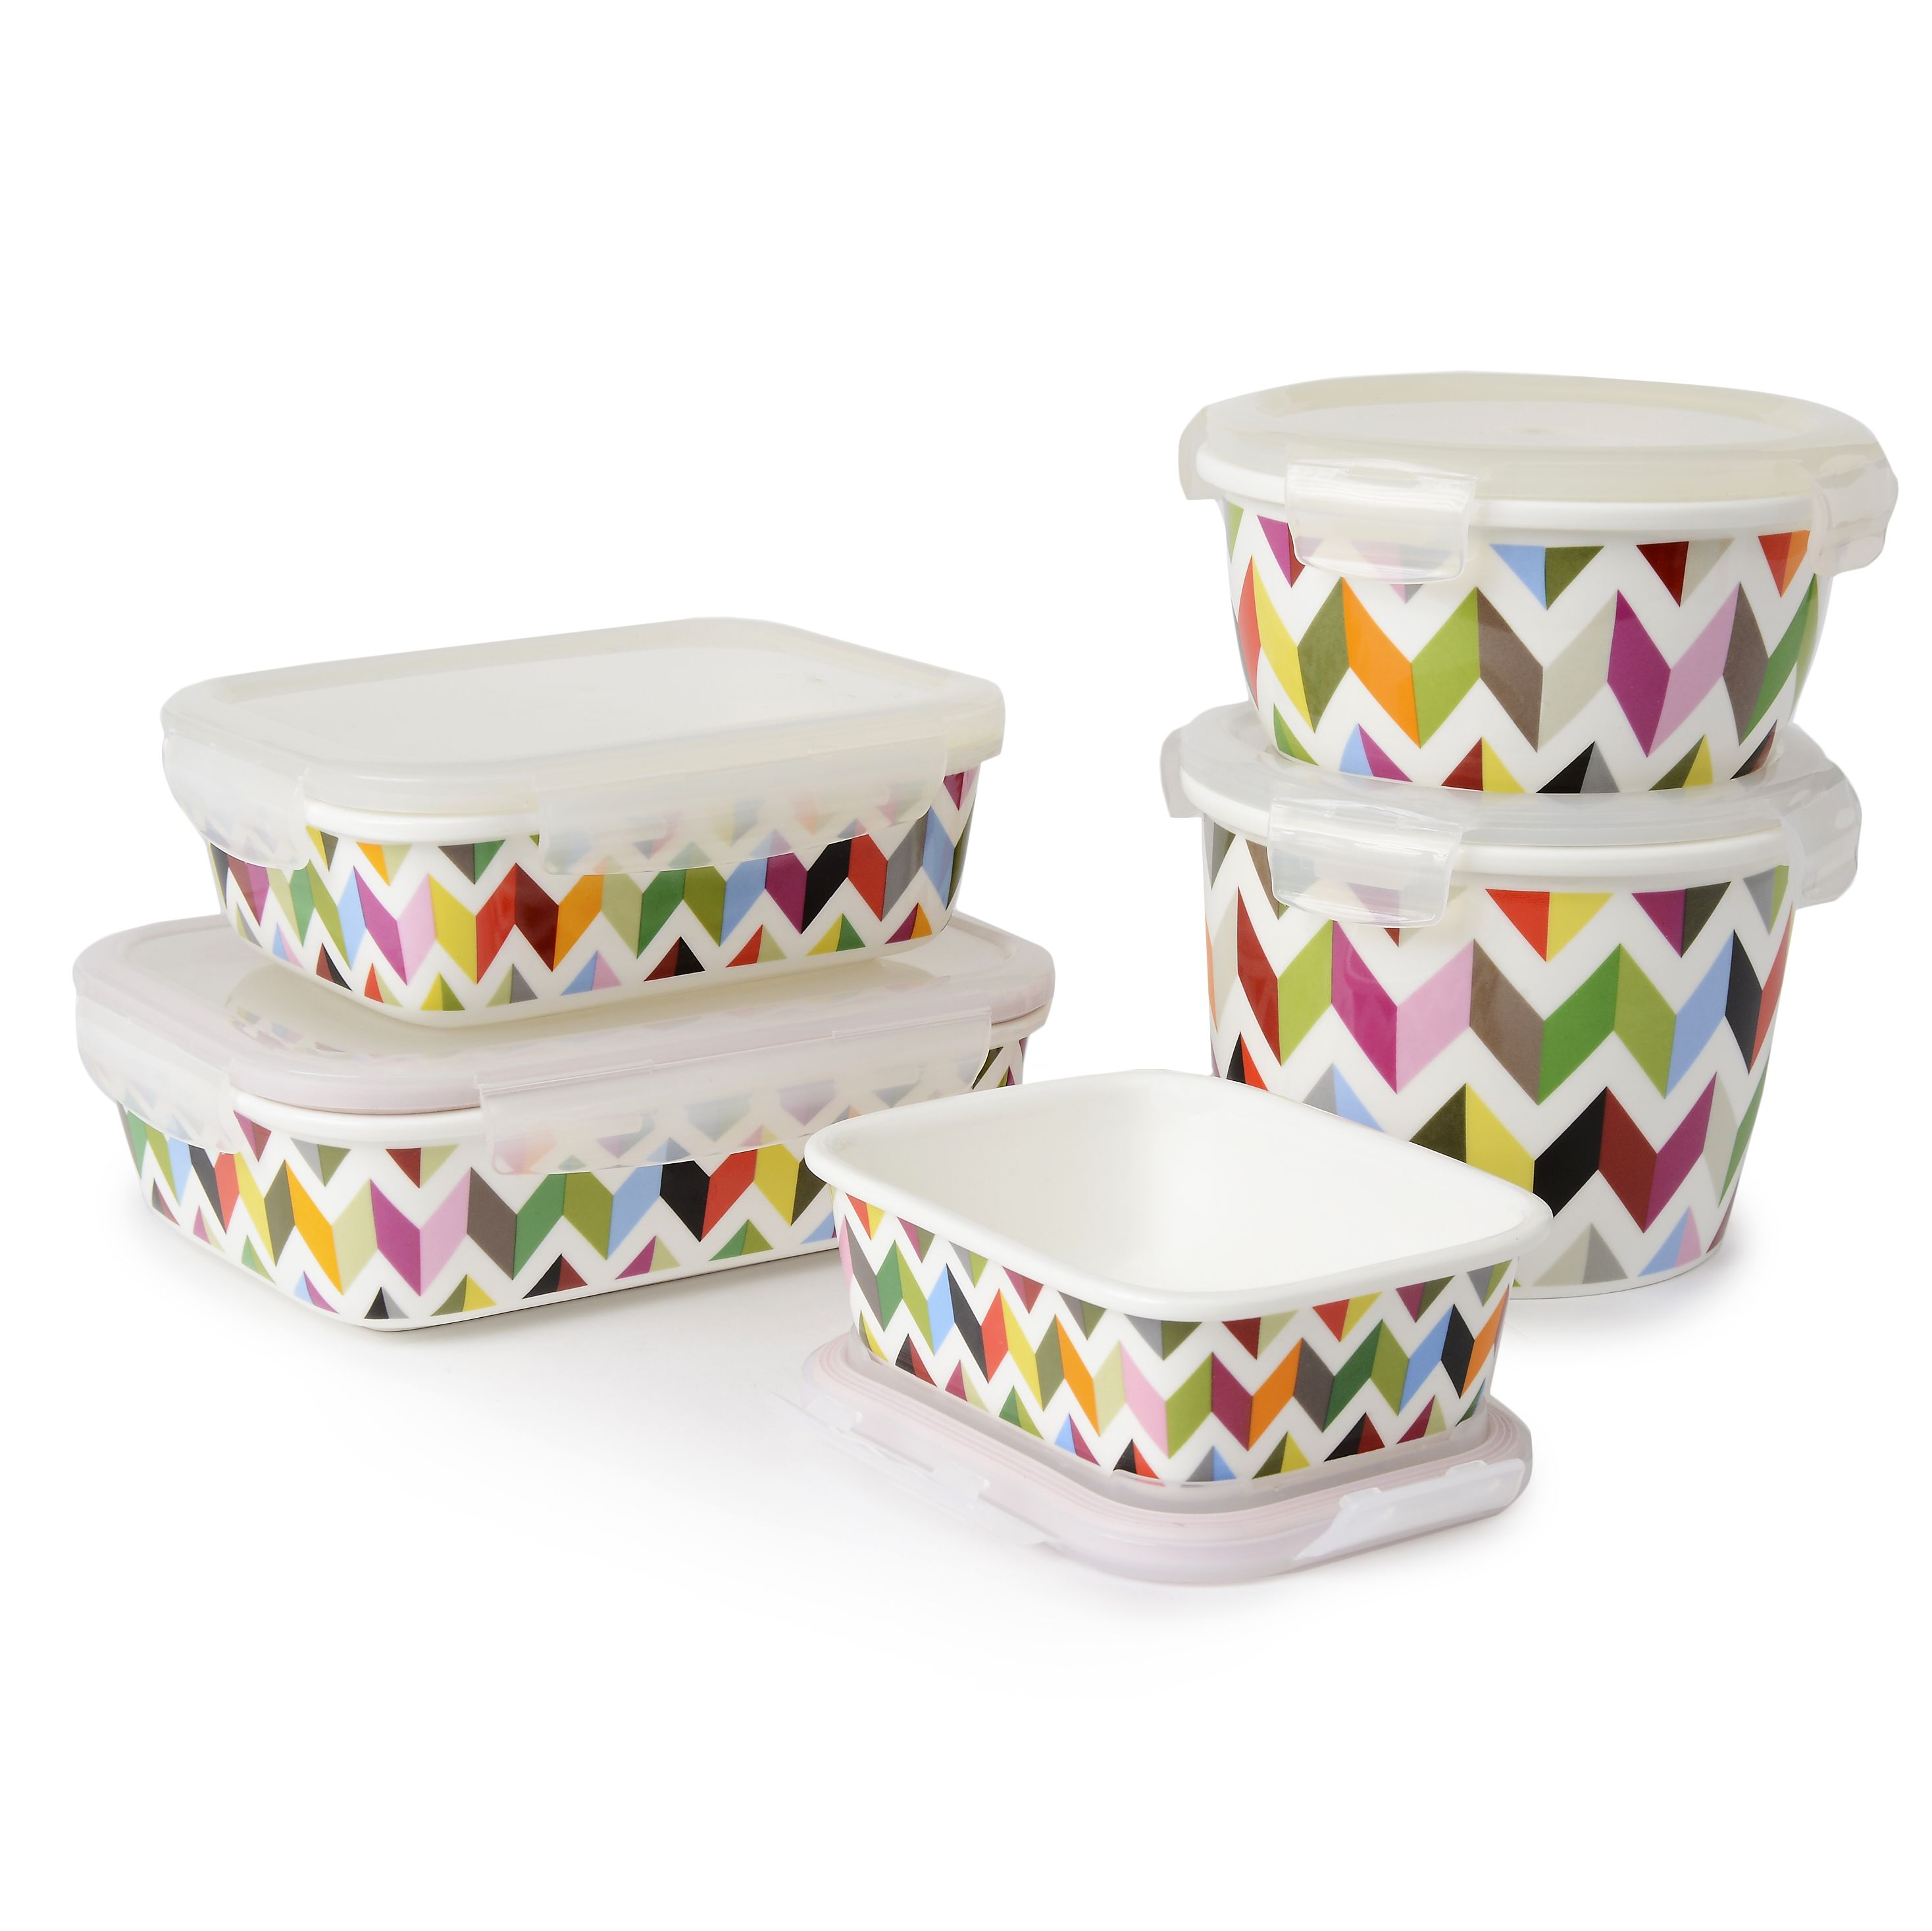 French Bull porcelain storage containers bake on the go serve